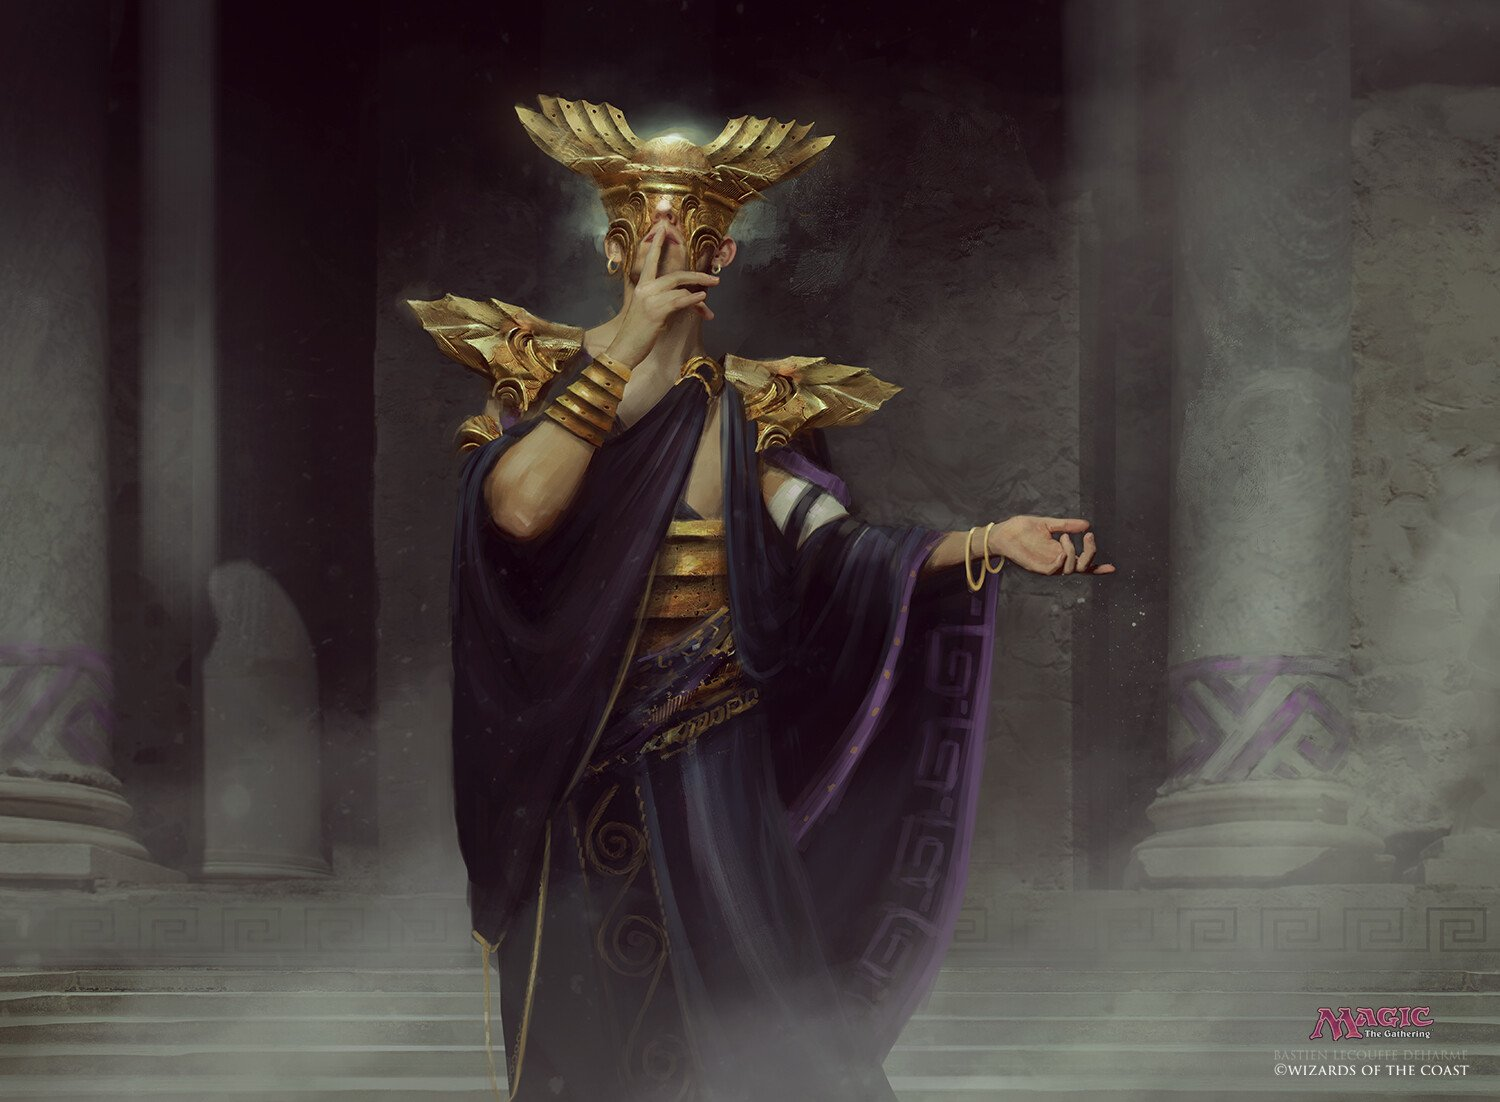 Tasha's Cauldron Of Everything: Way Of Mercy Monk Receives Final Update In Wizards Of The Coast's Newest Rules Expansion